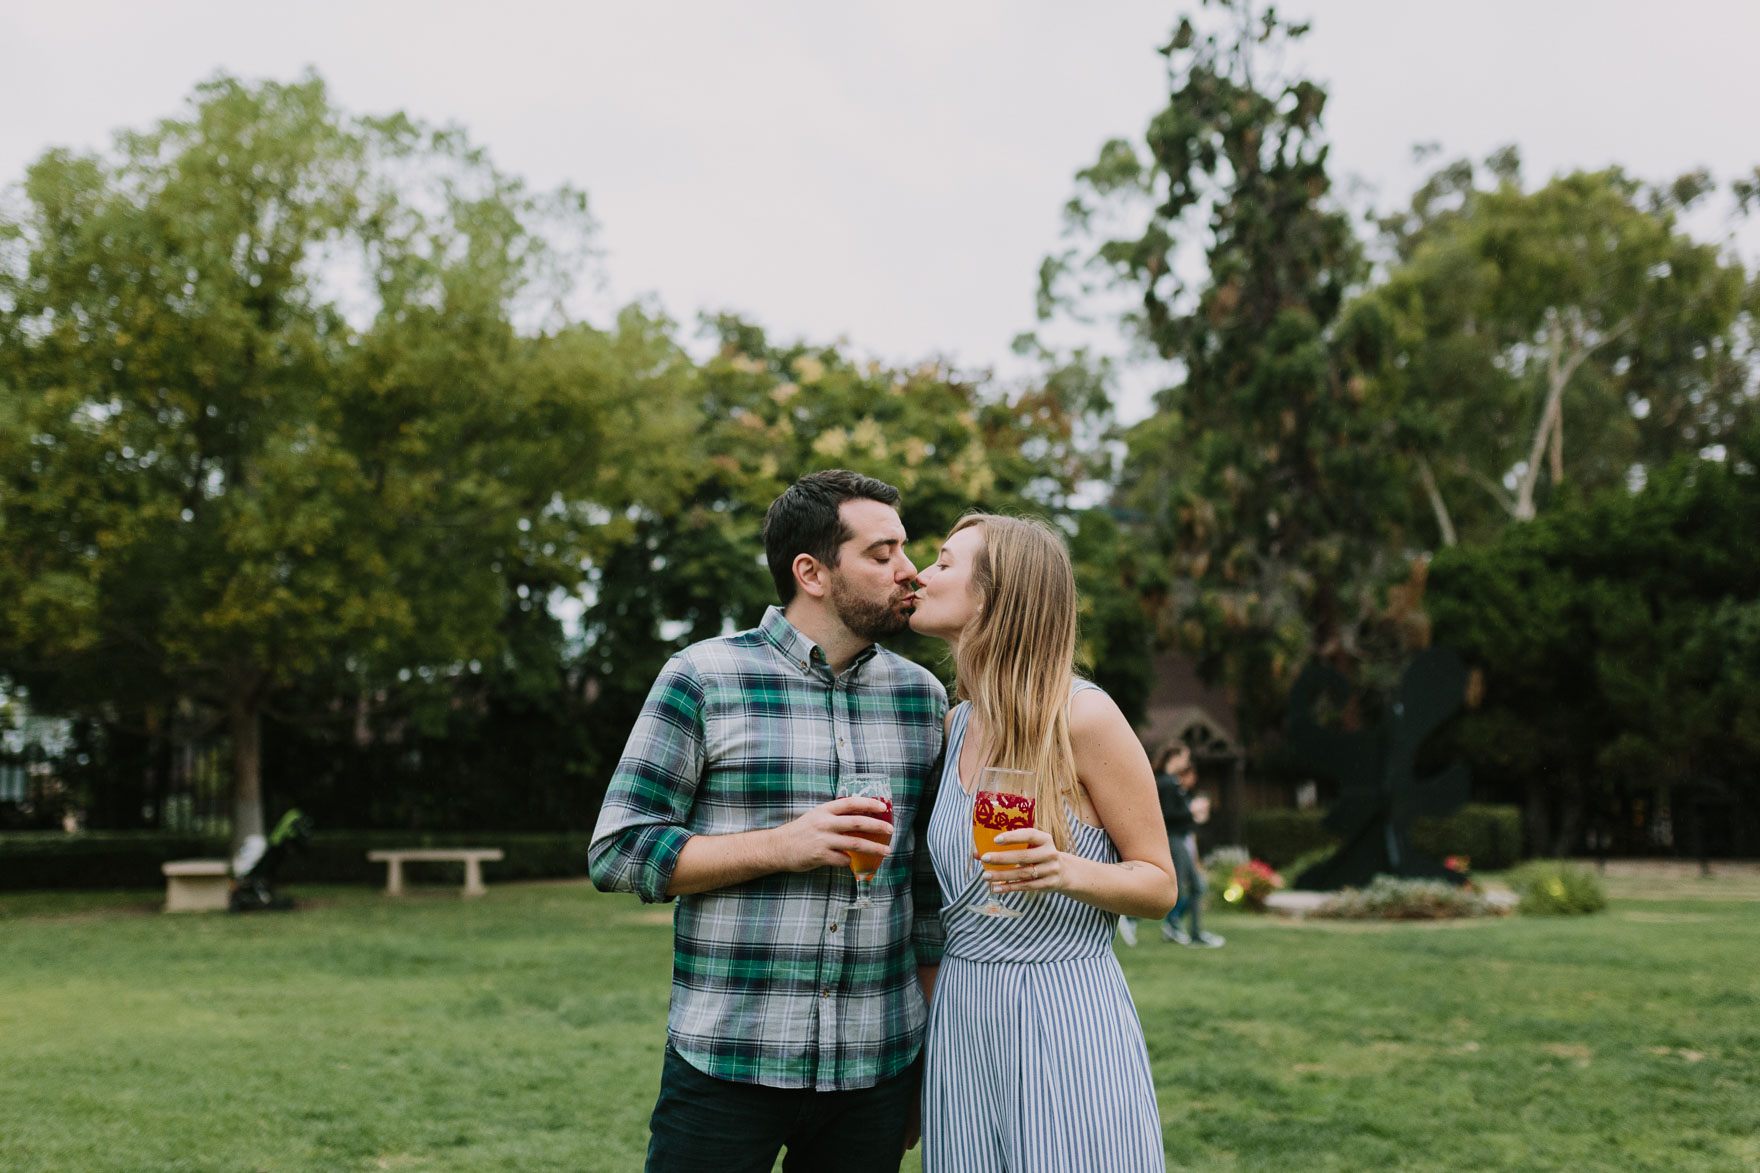 Beer and Gardens in San Diego – Photo by Let's Frolic Together